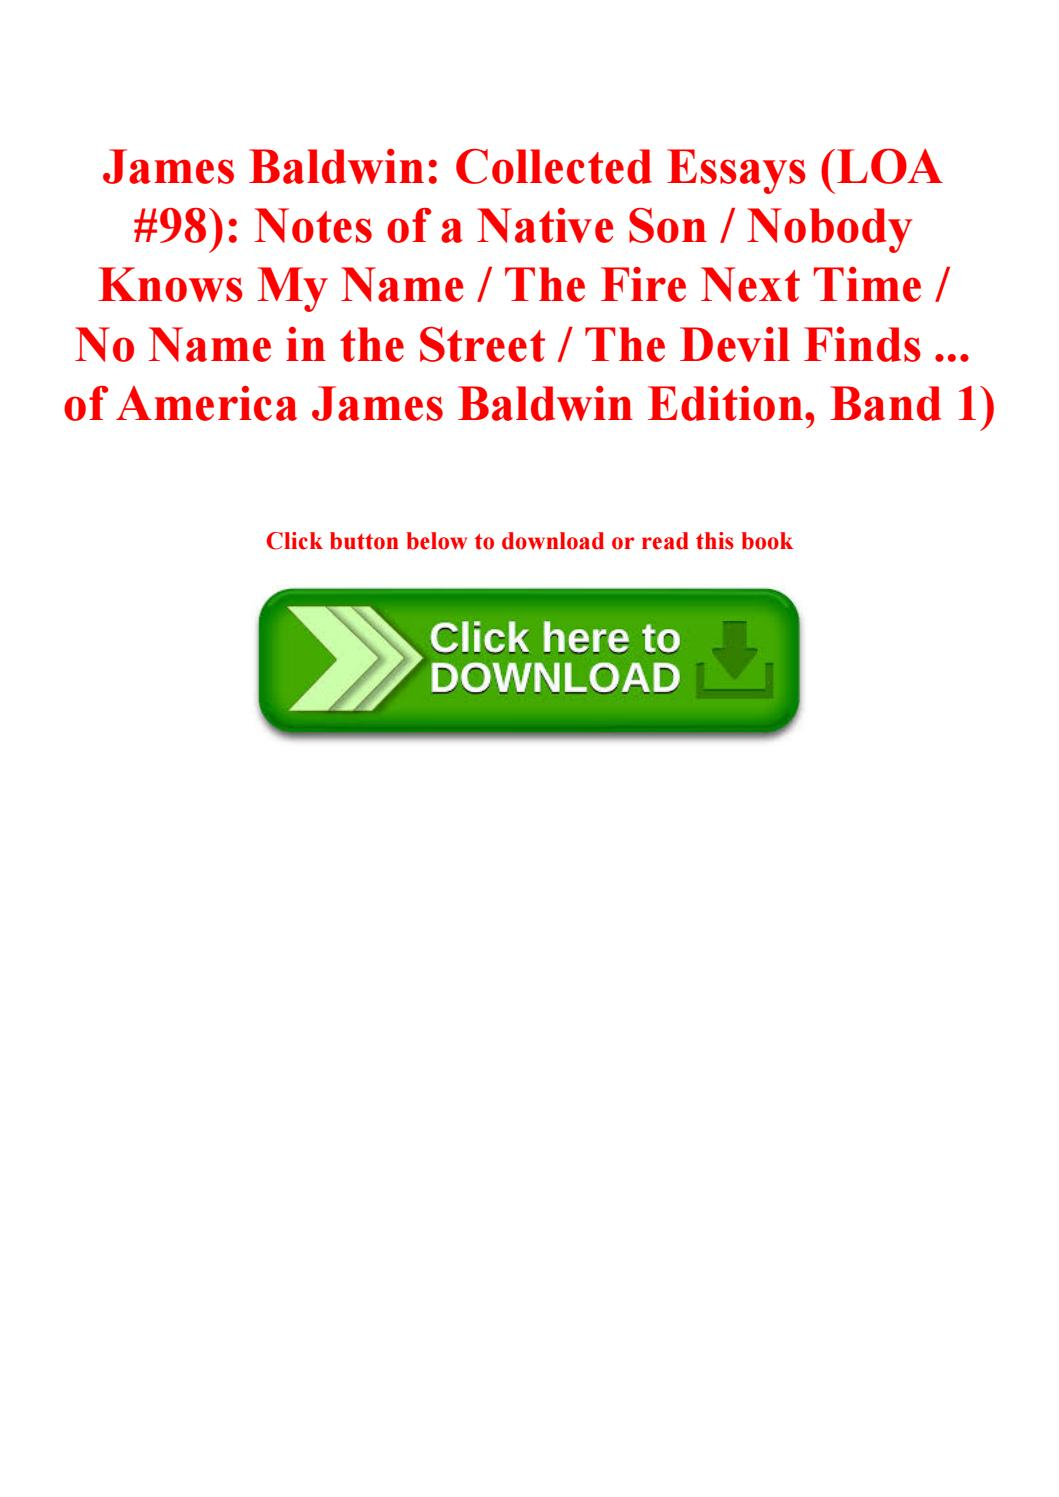 024 James Baldwin Collected Essays Essay Example Page 1 Wondrous Google Books Pdf Table Of Contents Full